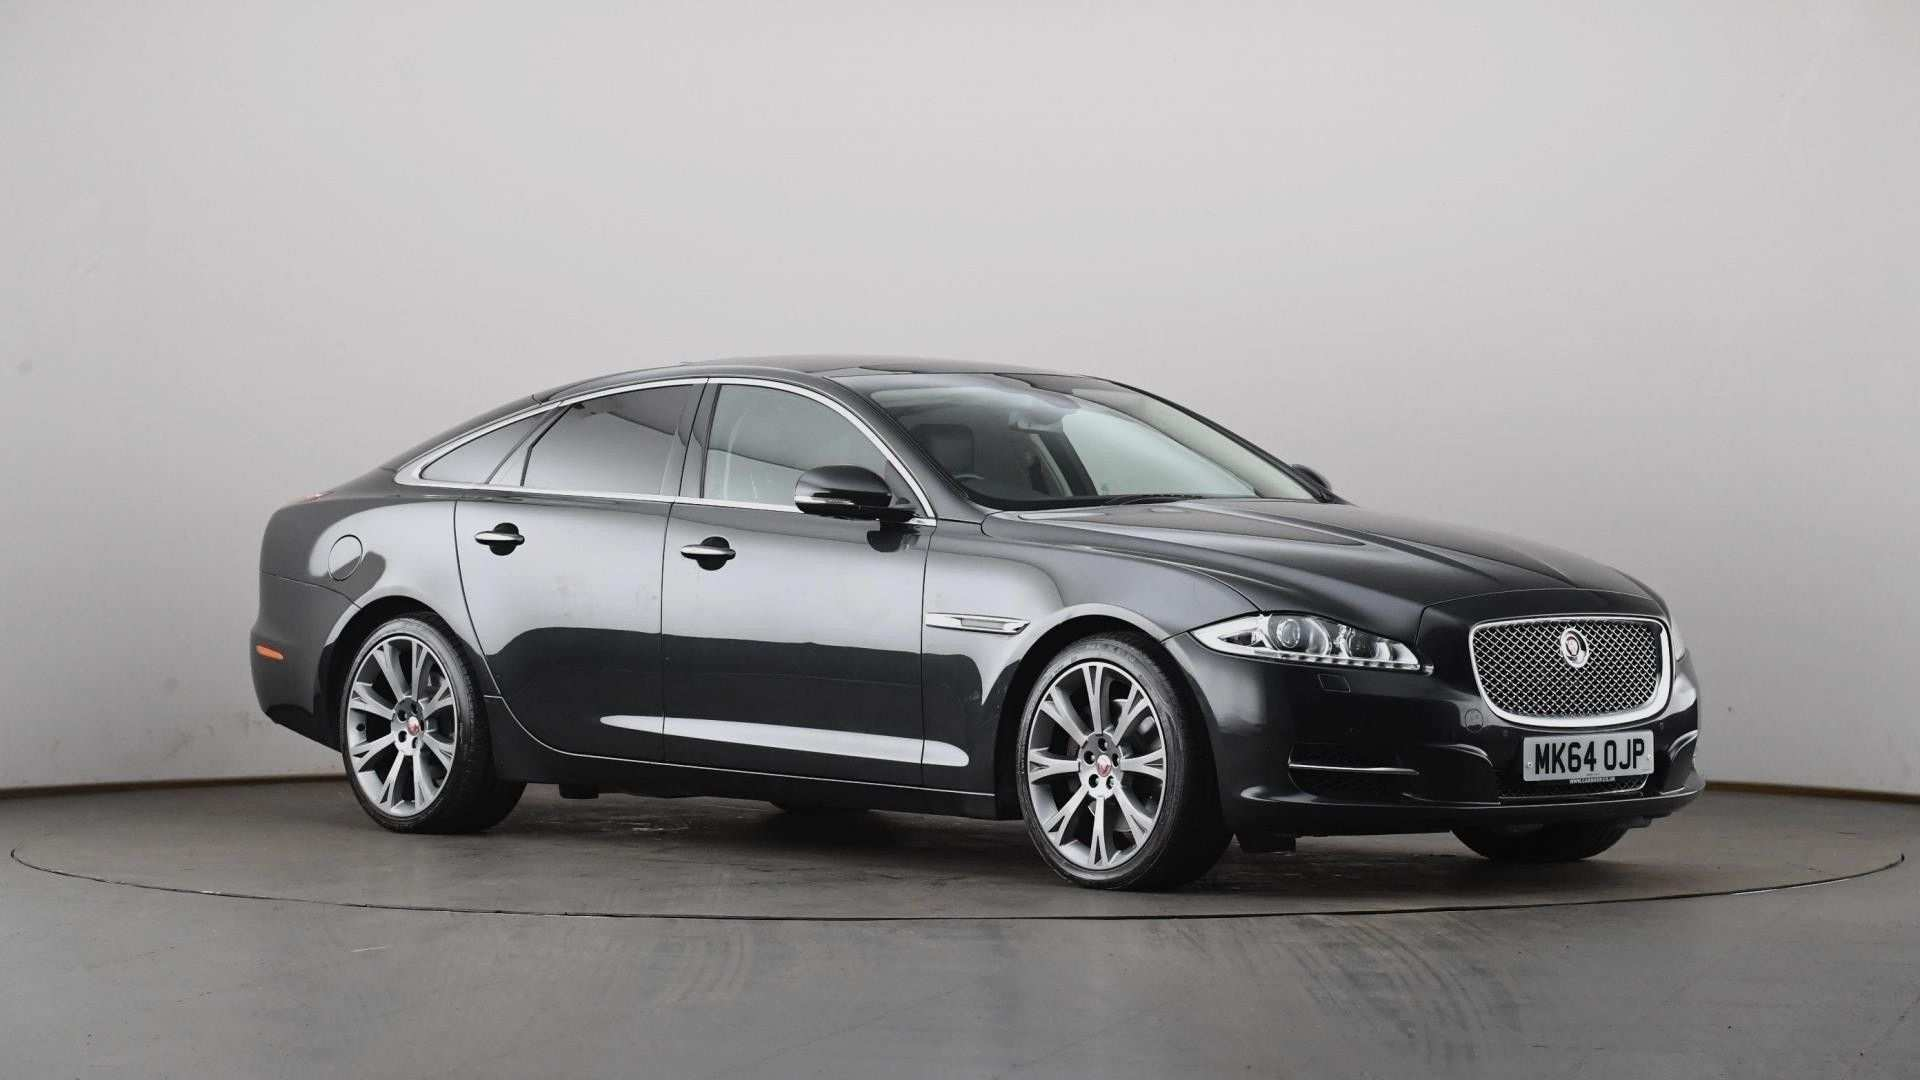 87 All New 2020 Jaguar XJ Picture